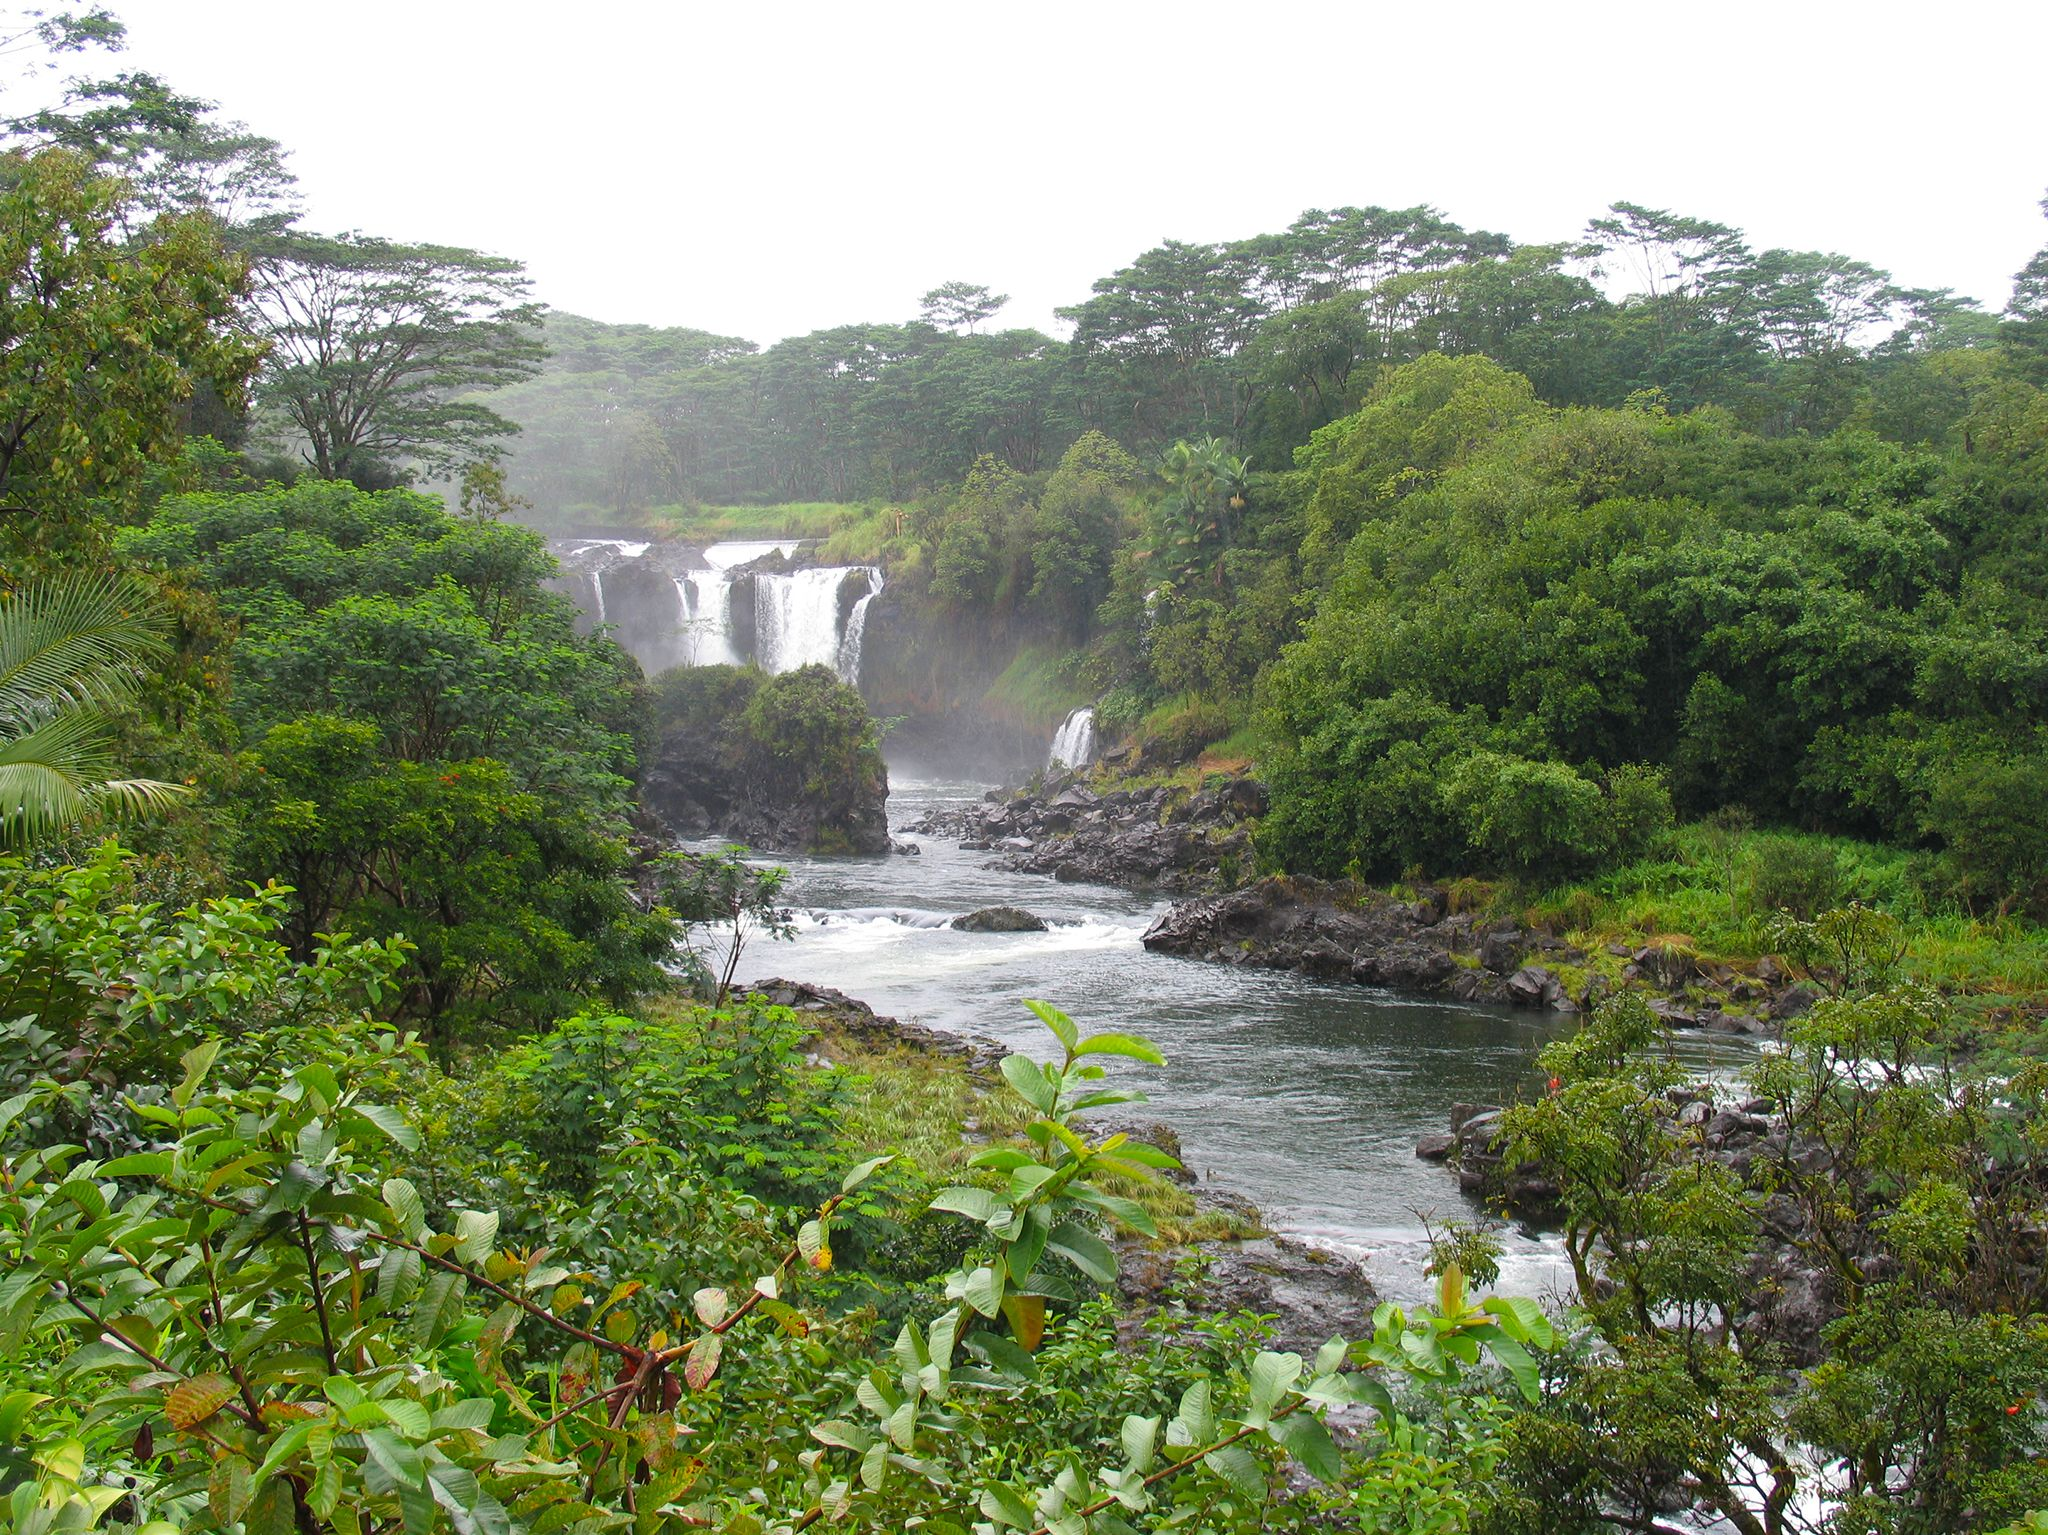 Beautiful Pe'epe'e Falls above the charming town of Hilo, Hawaii. This image is from Amazing... [Photo of the day - April 2019]